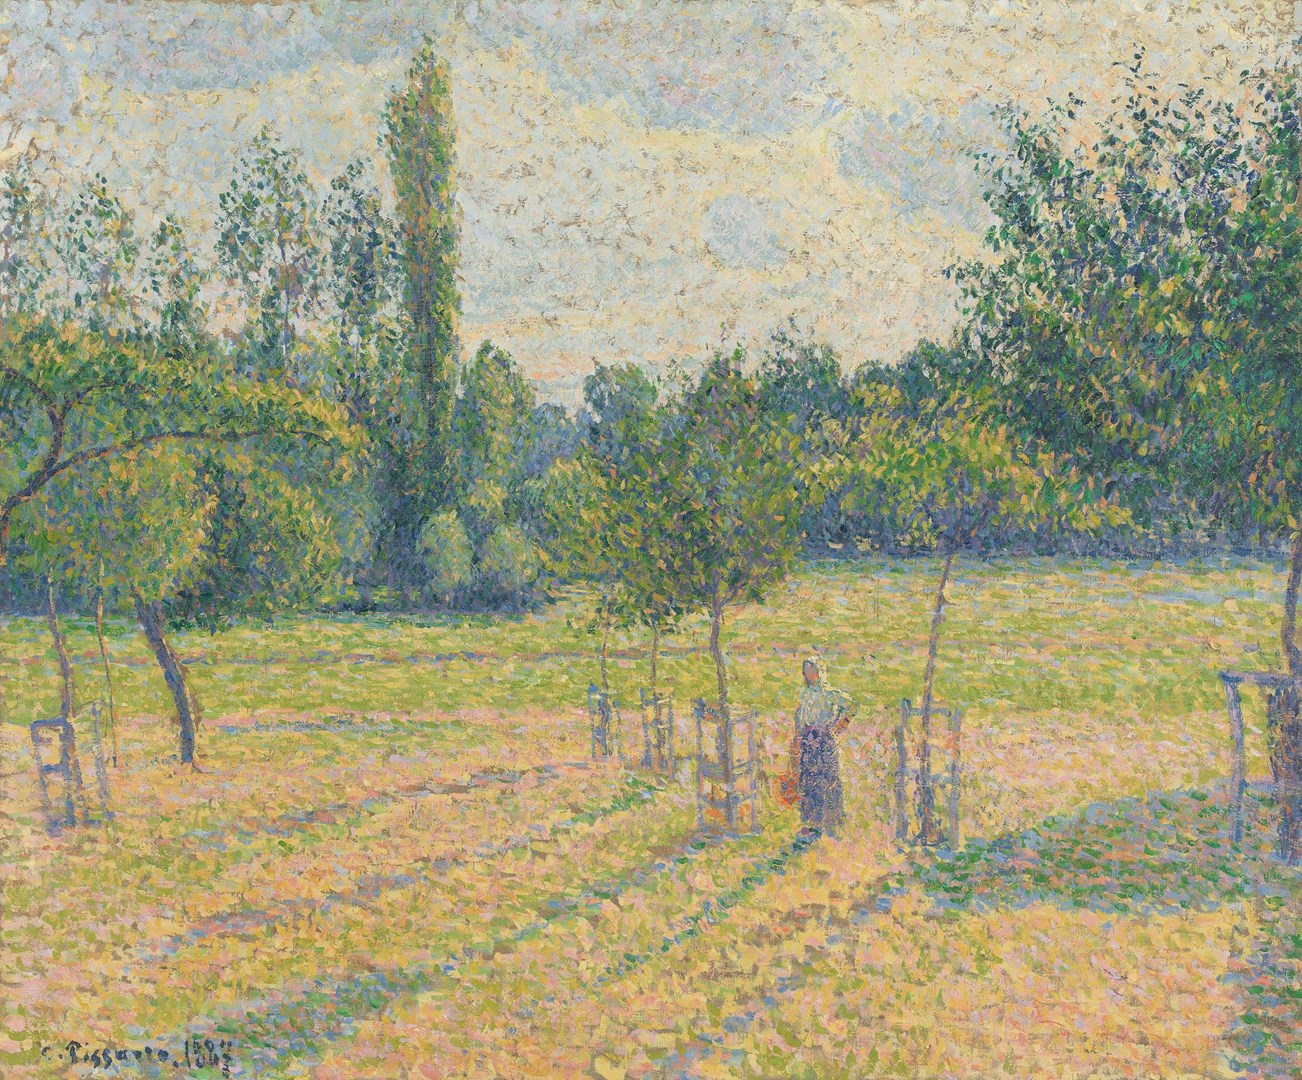 Late Afternoon in our Meadow by Camille Pissarro